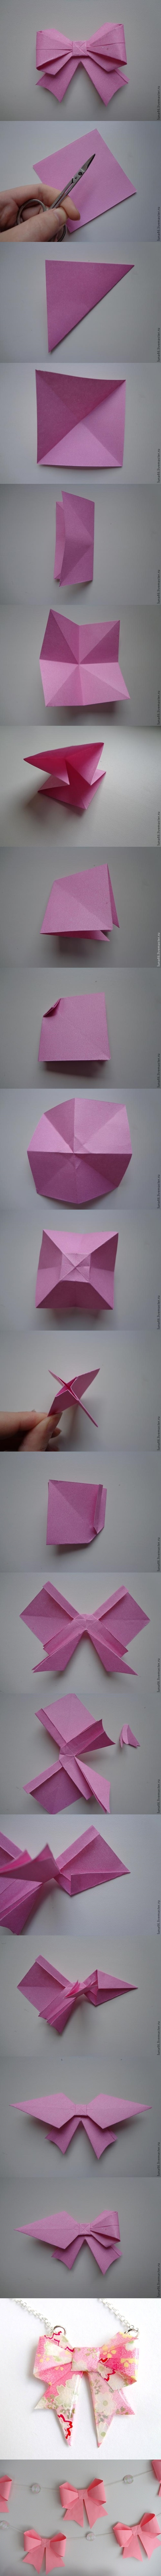 Paper-Bow-Making